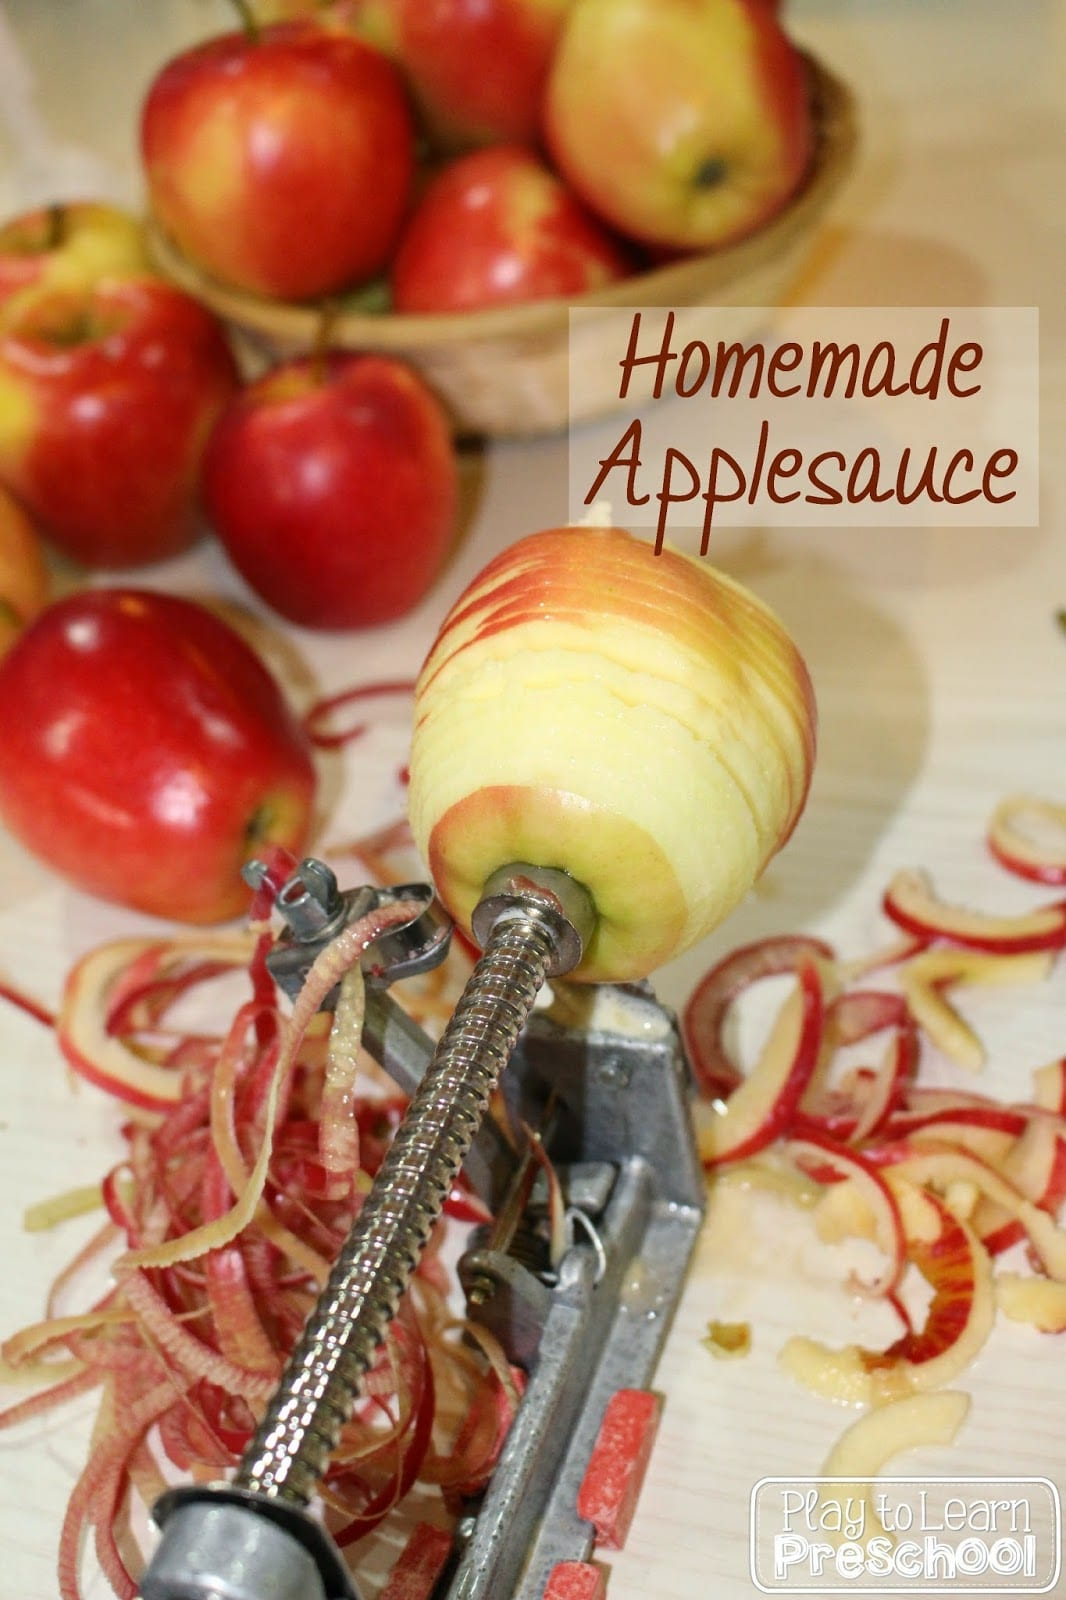 Making Applesauce Worksheets : Homemade applesauce play to learn